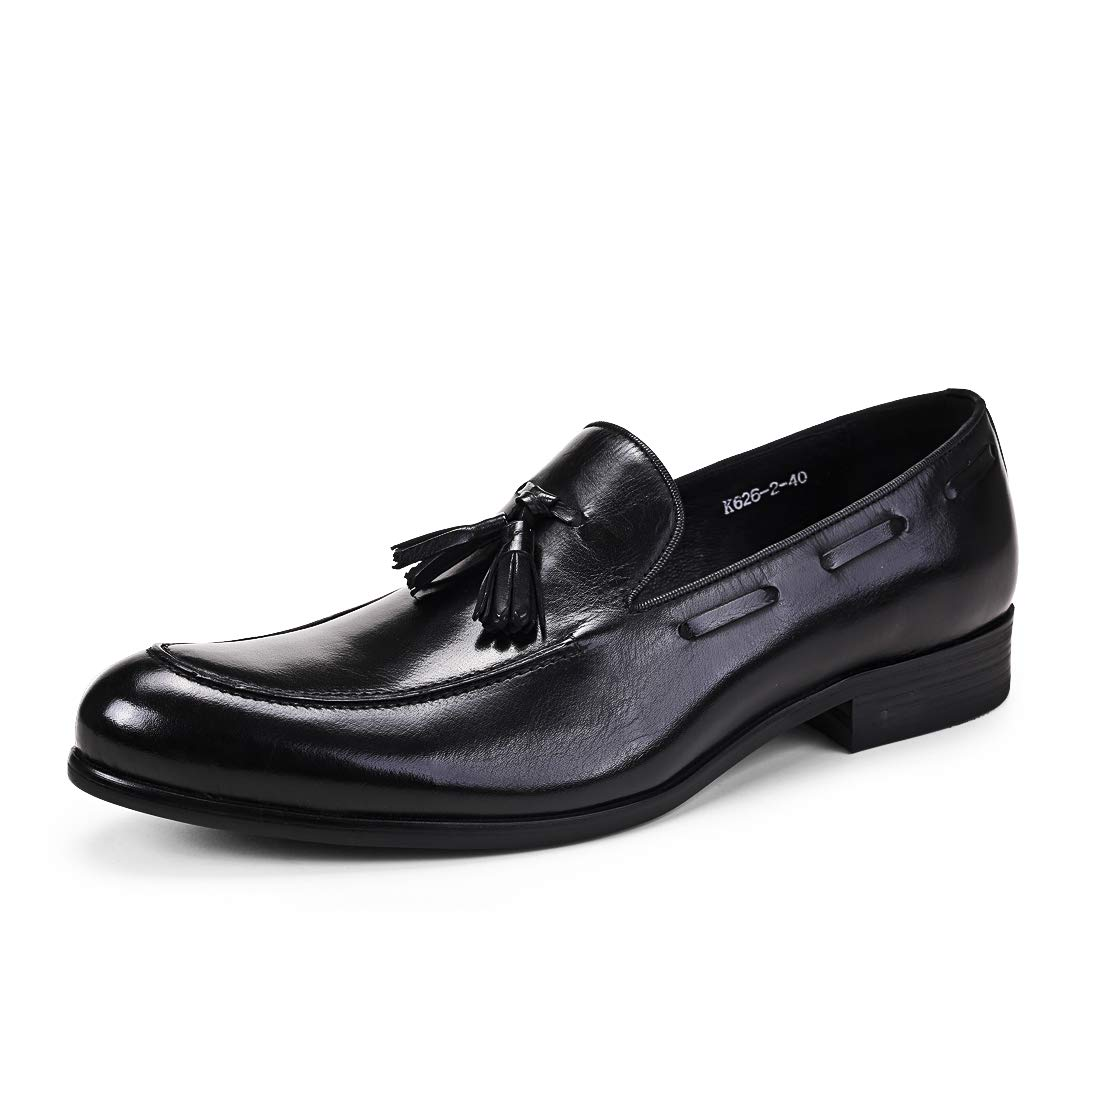 Black Mens Round Toe Loafers Genuine Business Smoking Driving Leather Footwear Boat Formal Casual Tassel Dress shoes shoes